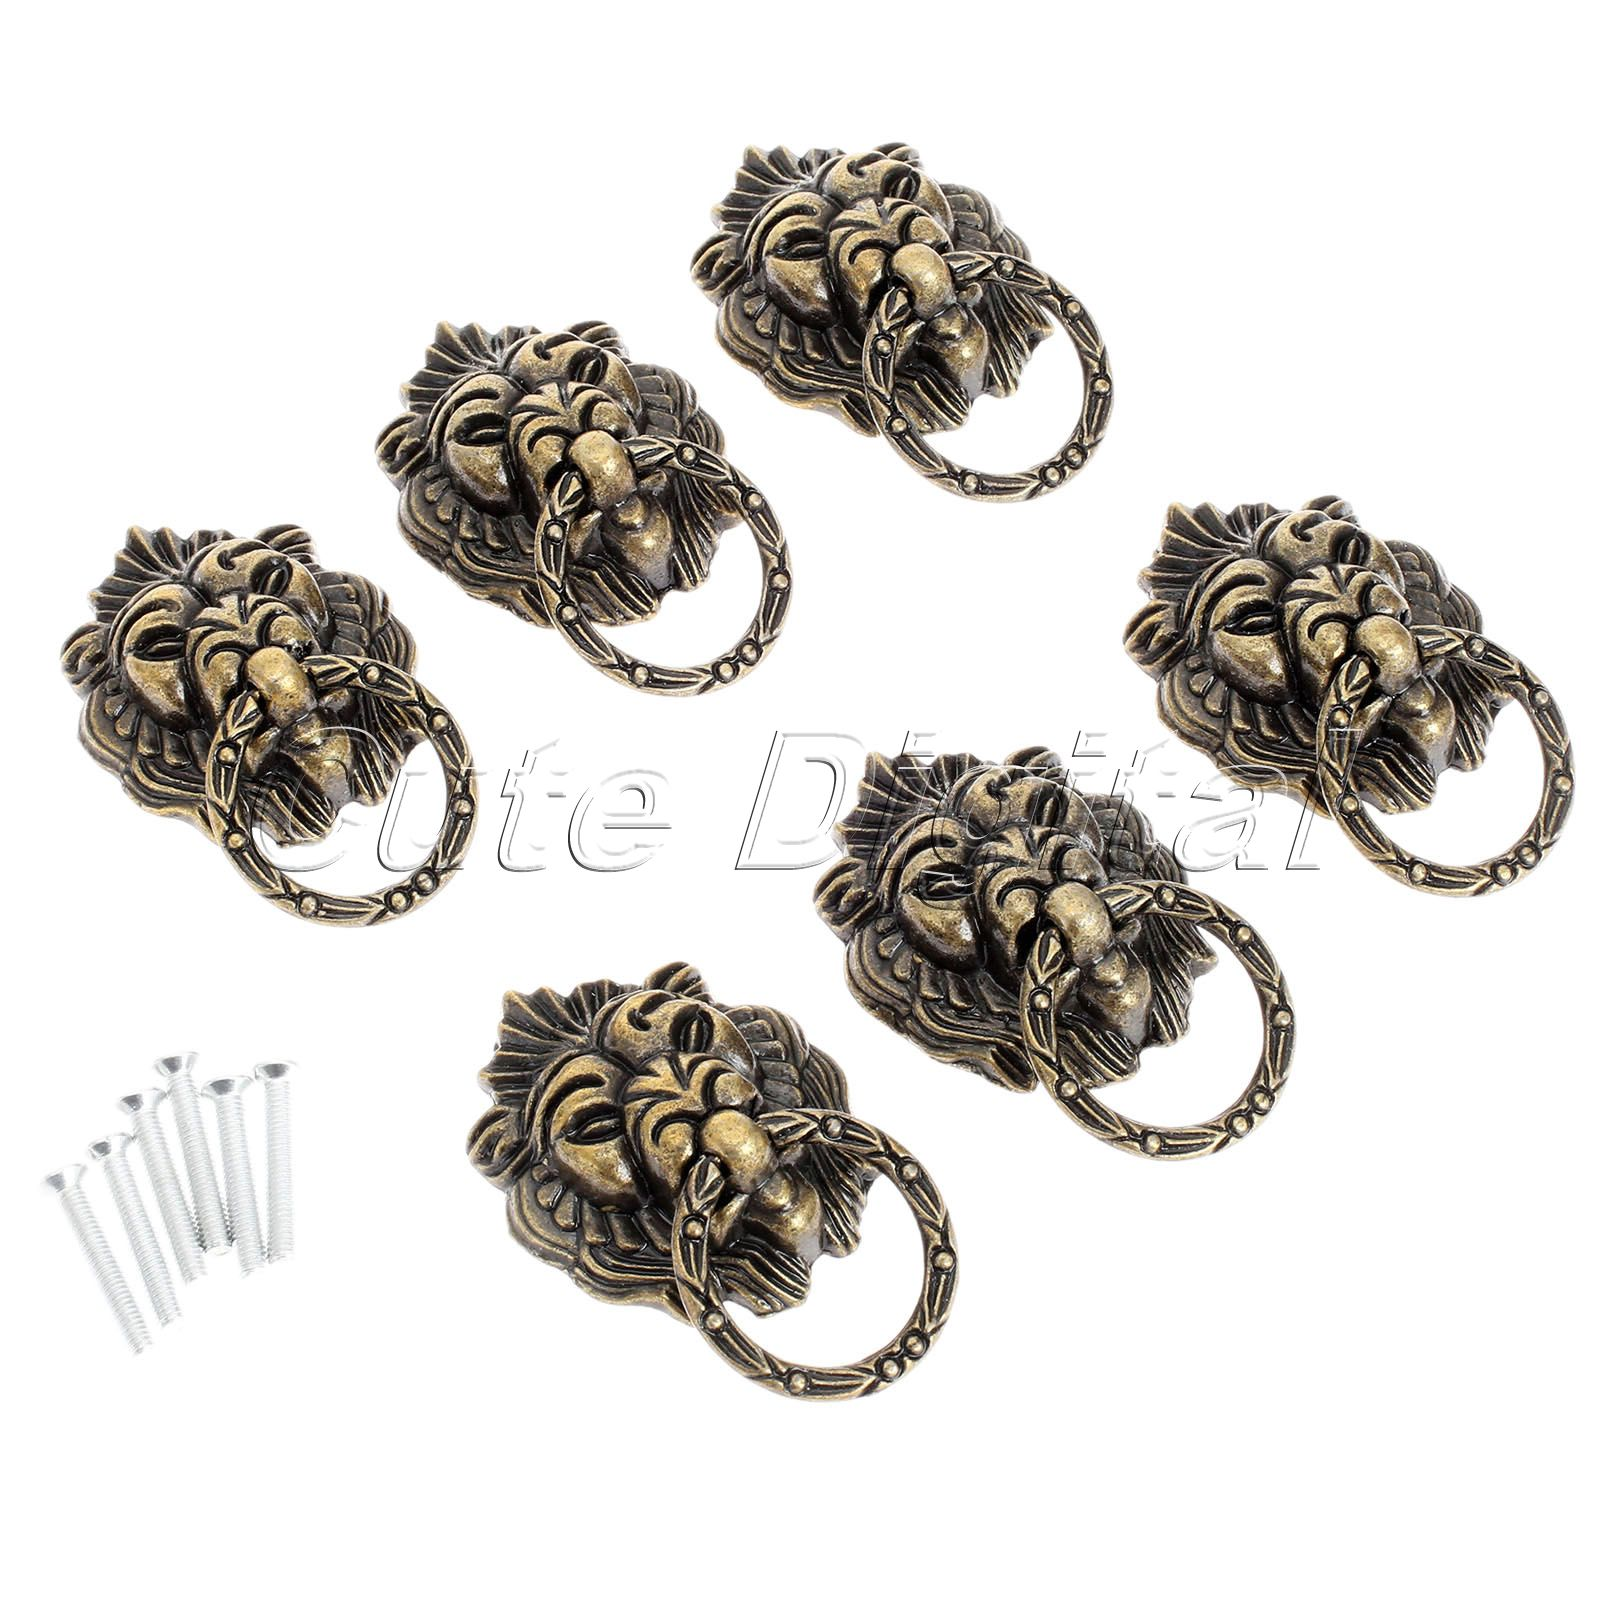 6pcs Antique Brass cabinet knobs and handles for furniture Pull Handle Cupboard Handles Pull Knobs Decorative Furniture Fittings